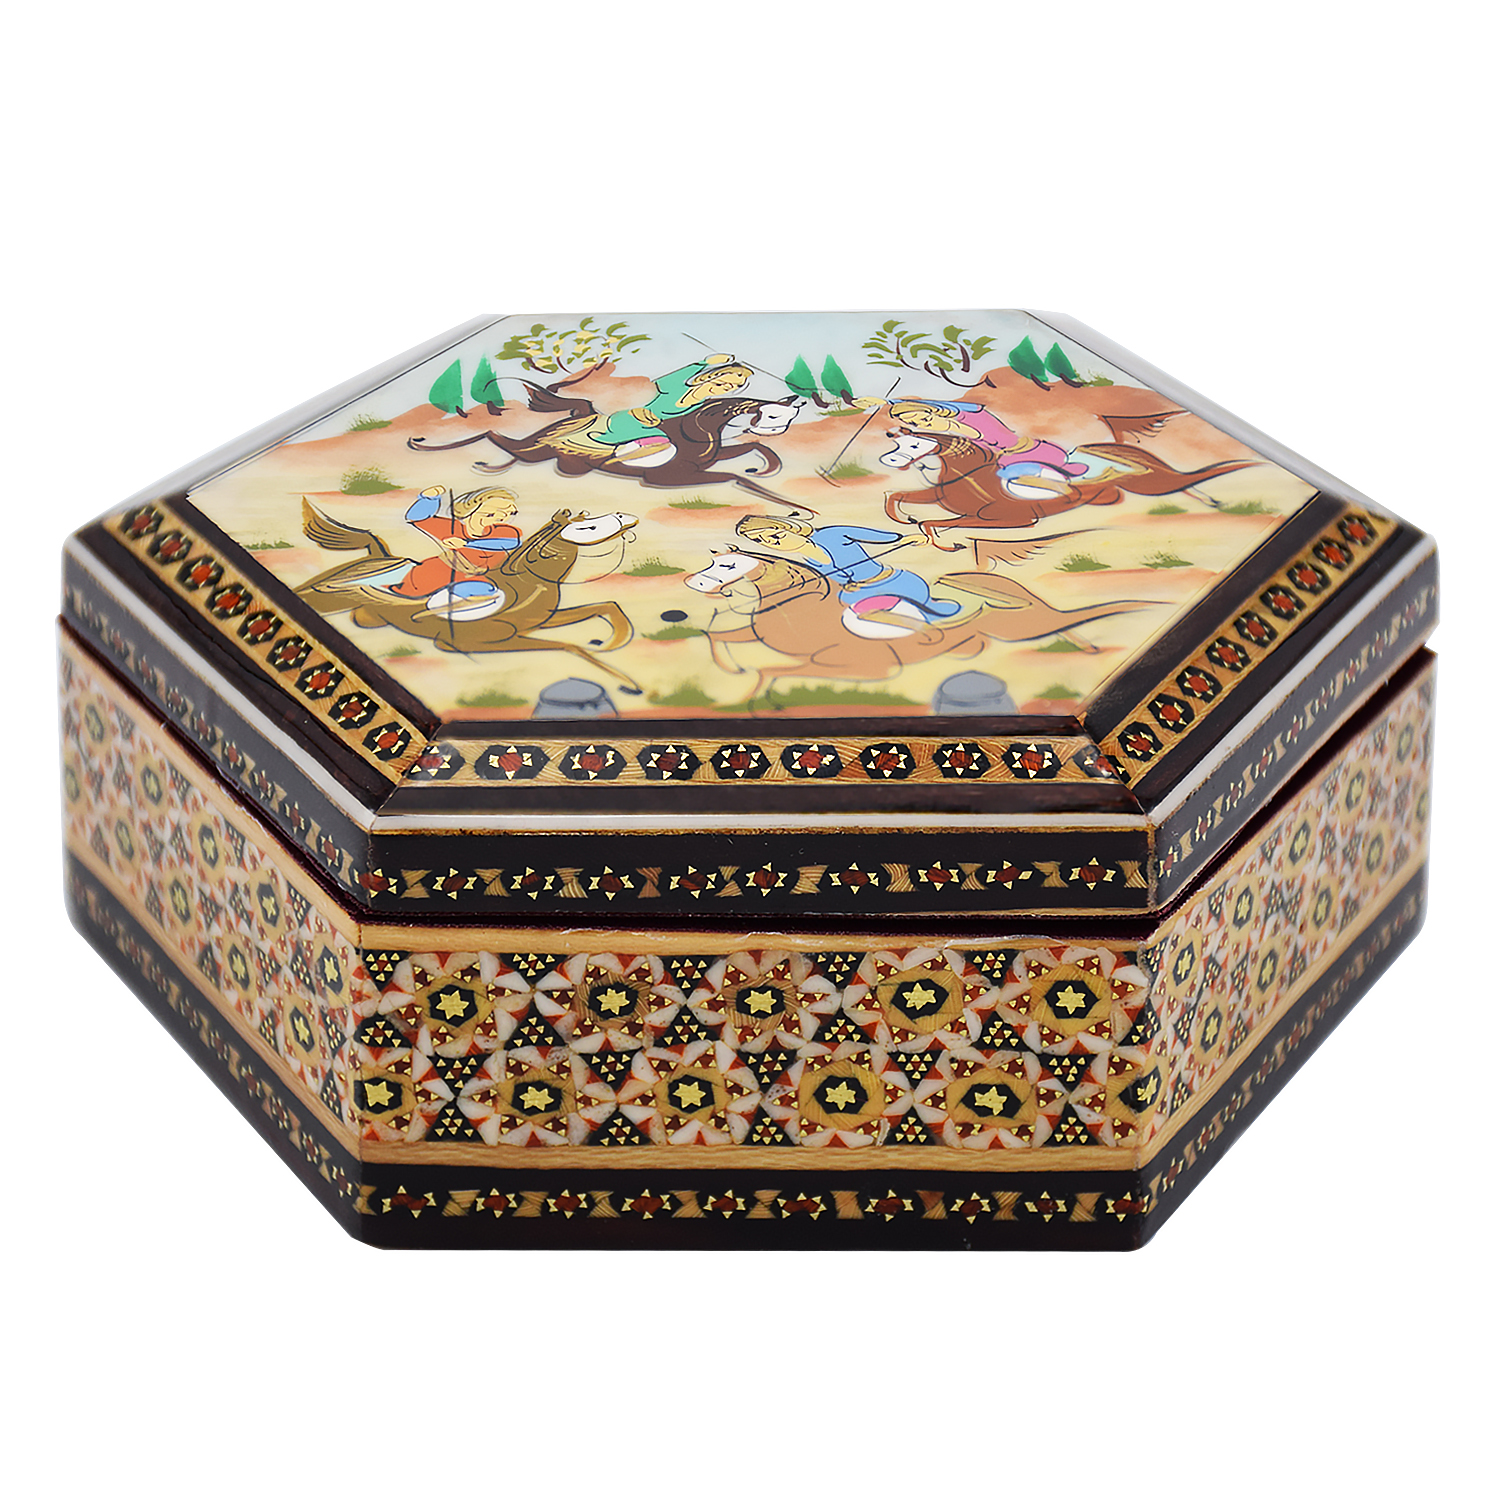 Inlay handicraft casket, Chogan Model, code 479